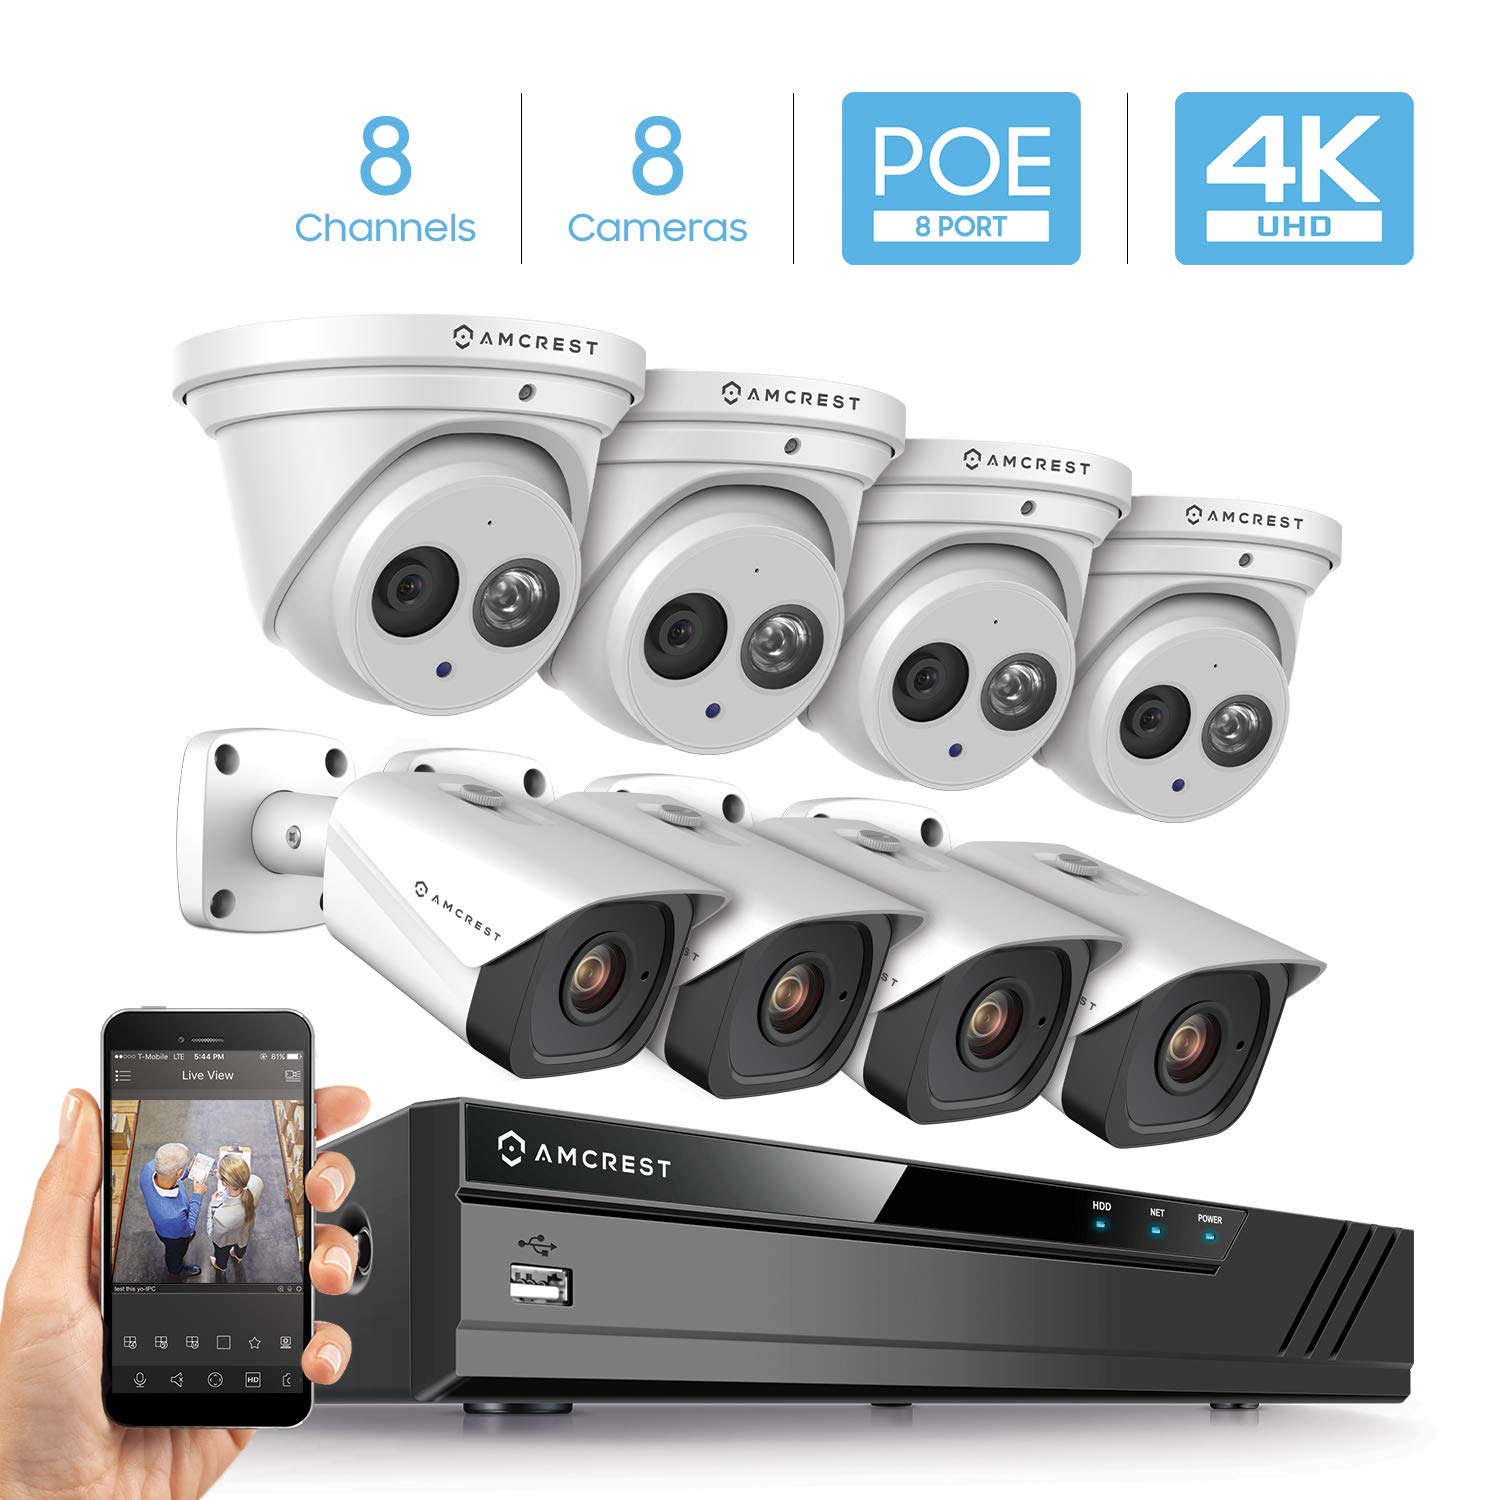 Amcrest 4K Security Camera System w 4K 8CH PoE NVR, 8 x 4K IP67 Weatherproof Metal Turret Dome Bullet POE IP Cameras, 2.8mm Lens, Hard Drive Not Included, NV4108E-T2499EW4-2496EW4 White